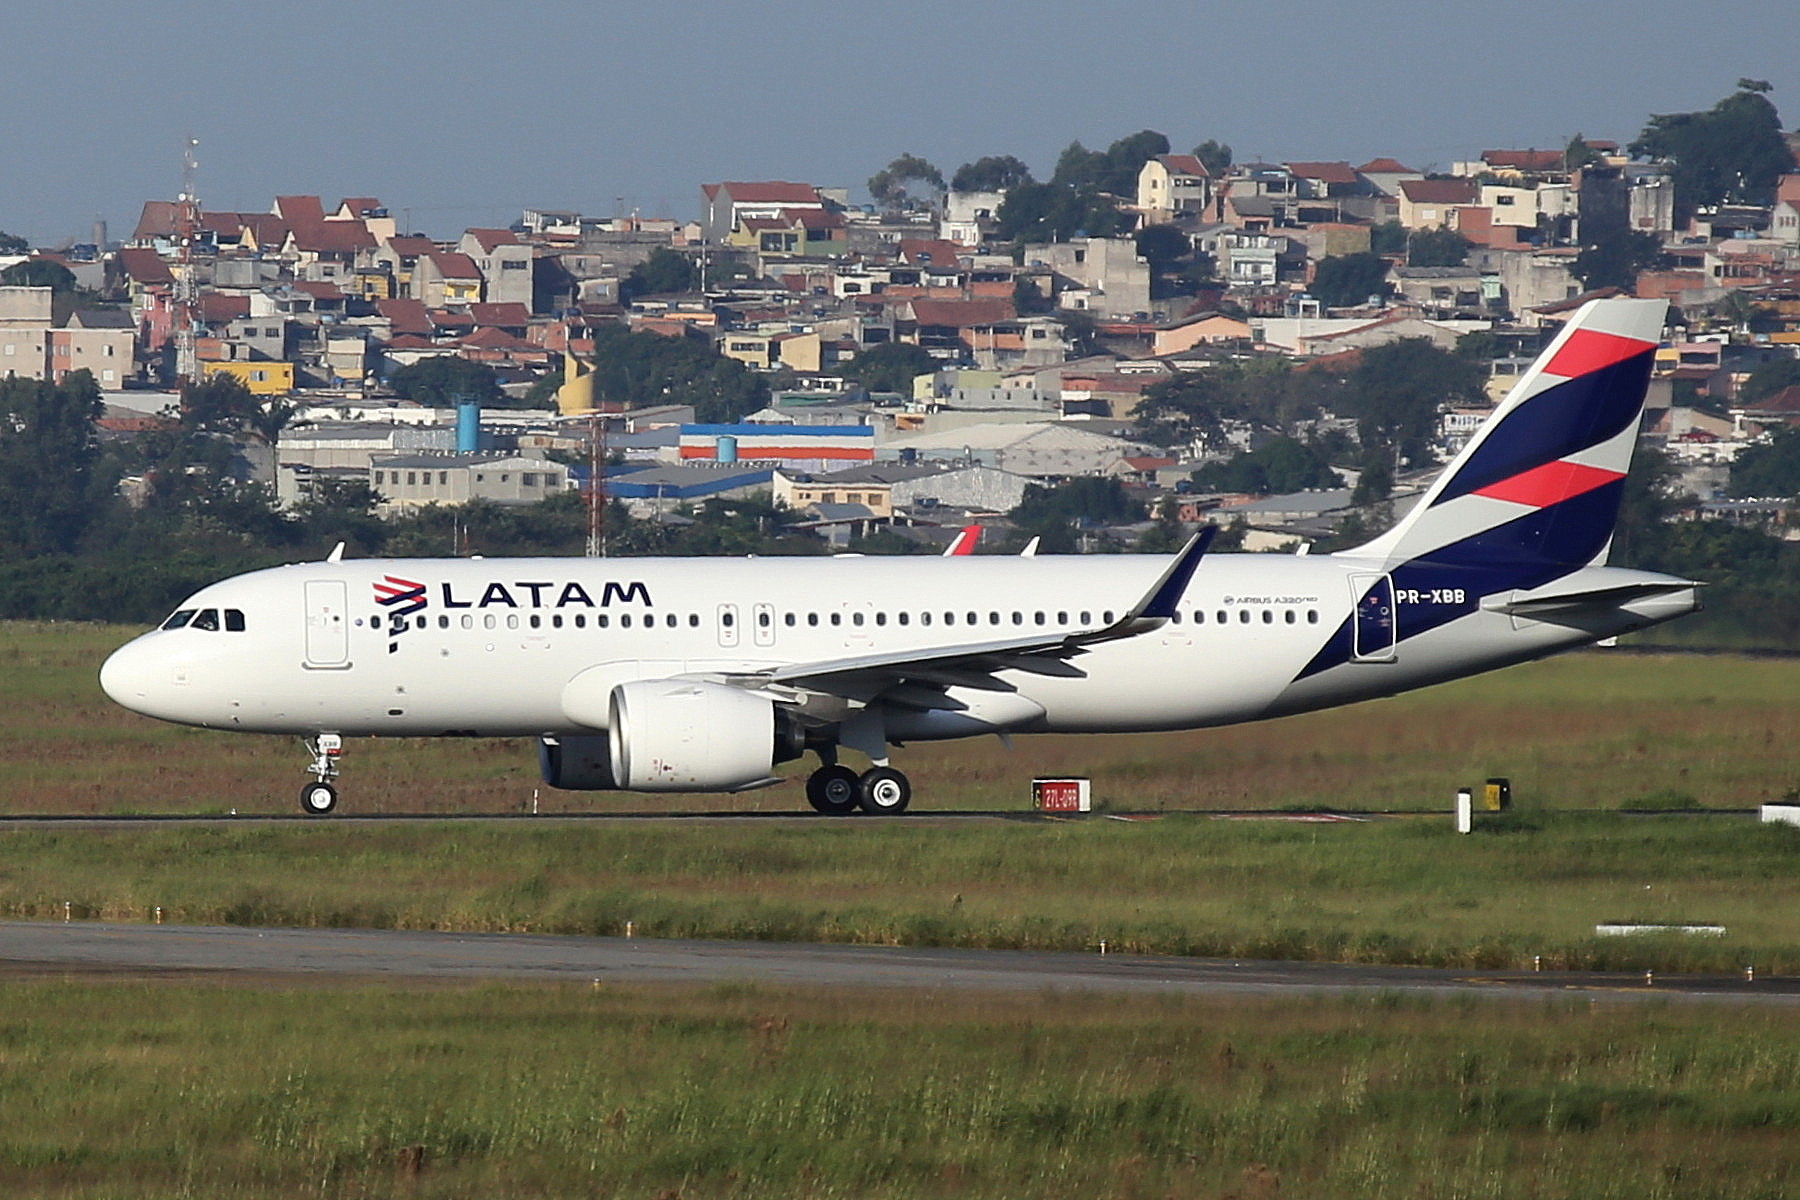 PR-XBB LATAM A320Neo taken from the roof of the Matiz Hotel at Sao Paulo Guarulhos Airport 27th April 2019 by John Wood